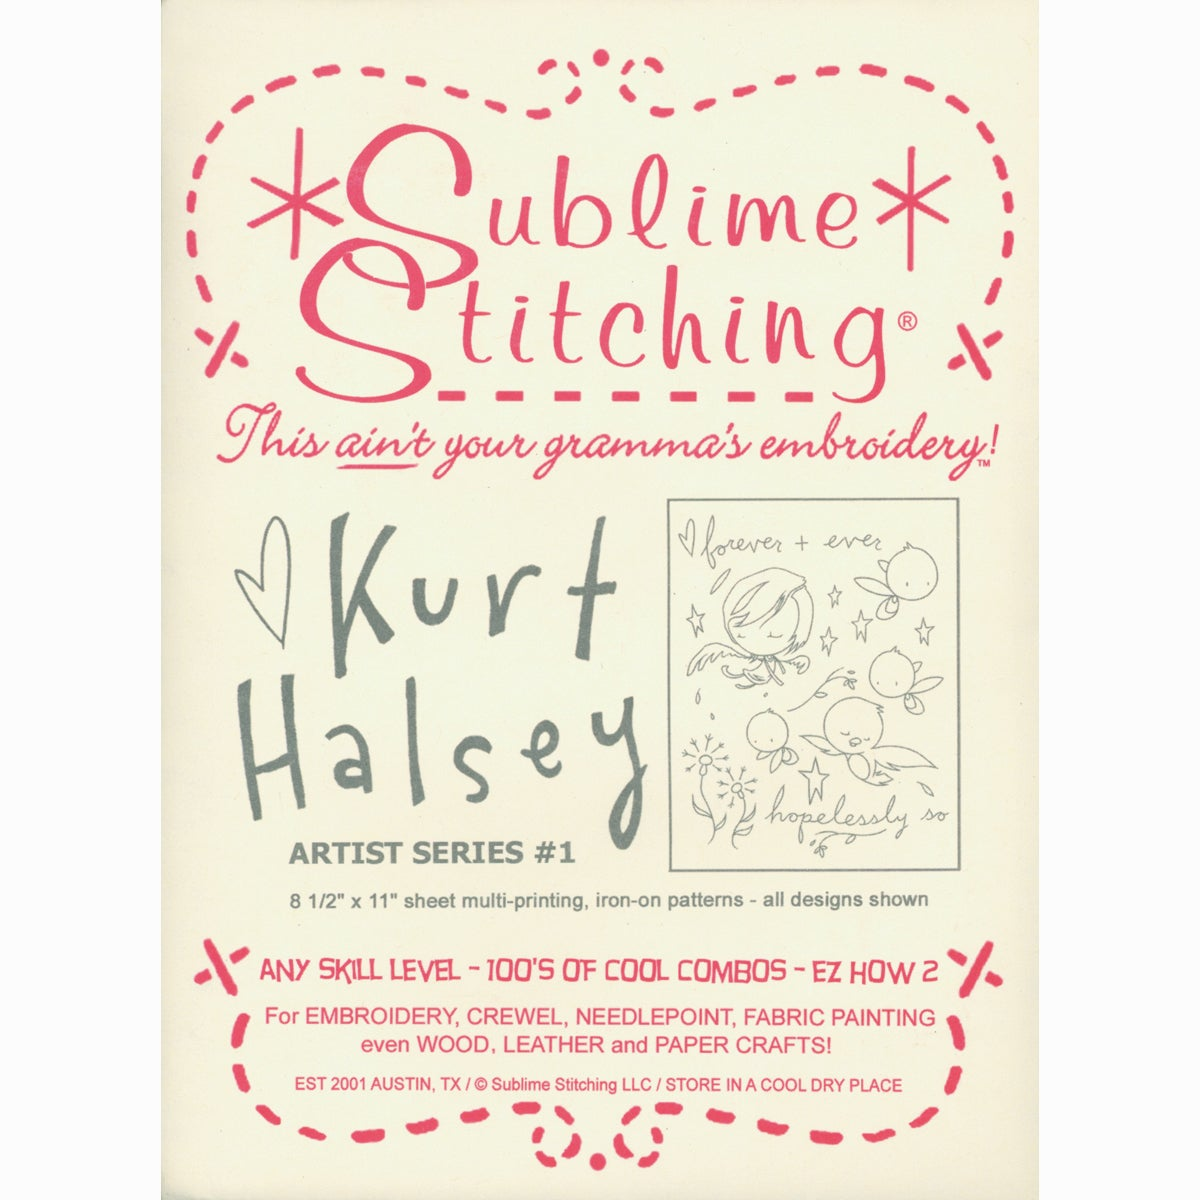 Overstock.com Sublime Stitching Embroidery Patterns Artist Series-Kurt Halsey #1 at Sears.com